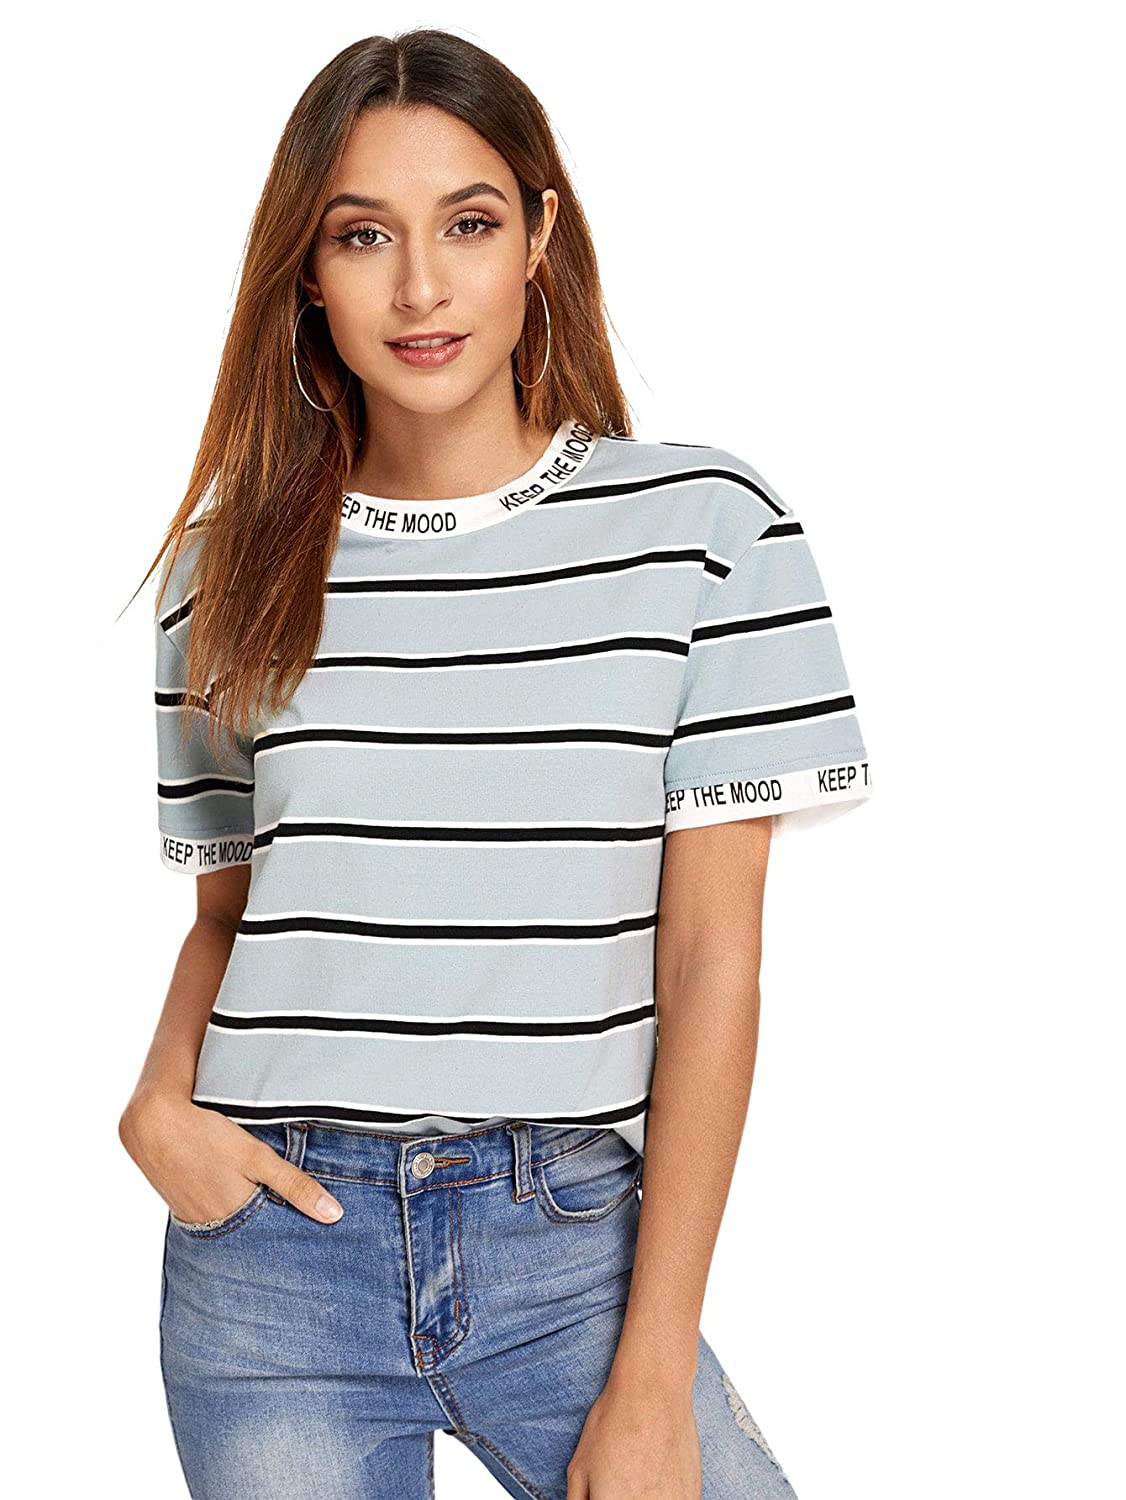 bluee Verdusa Women's Graphic Letter Printed color Block Stripe TShirt Casual Tee